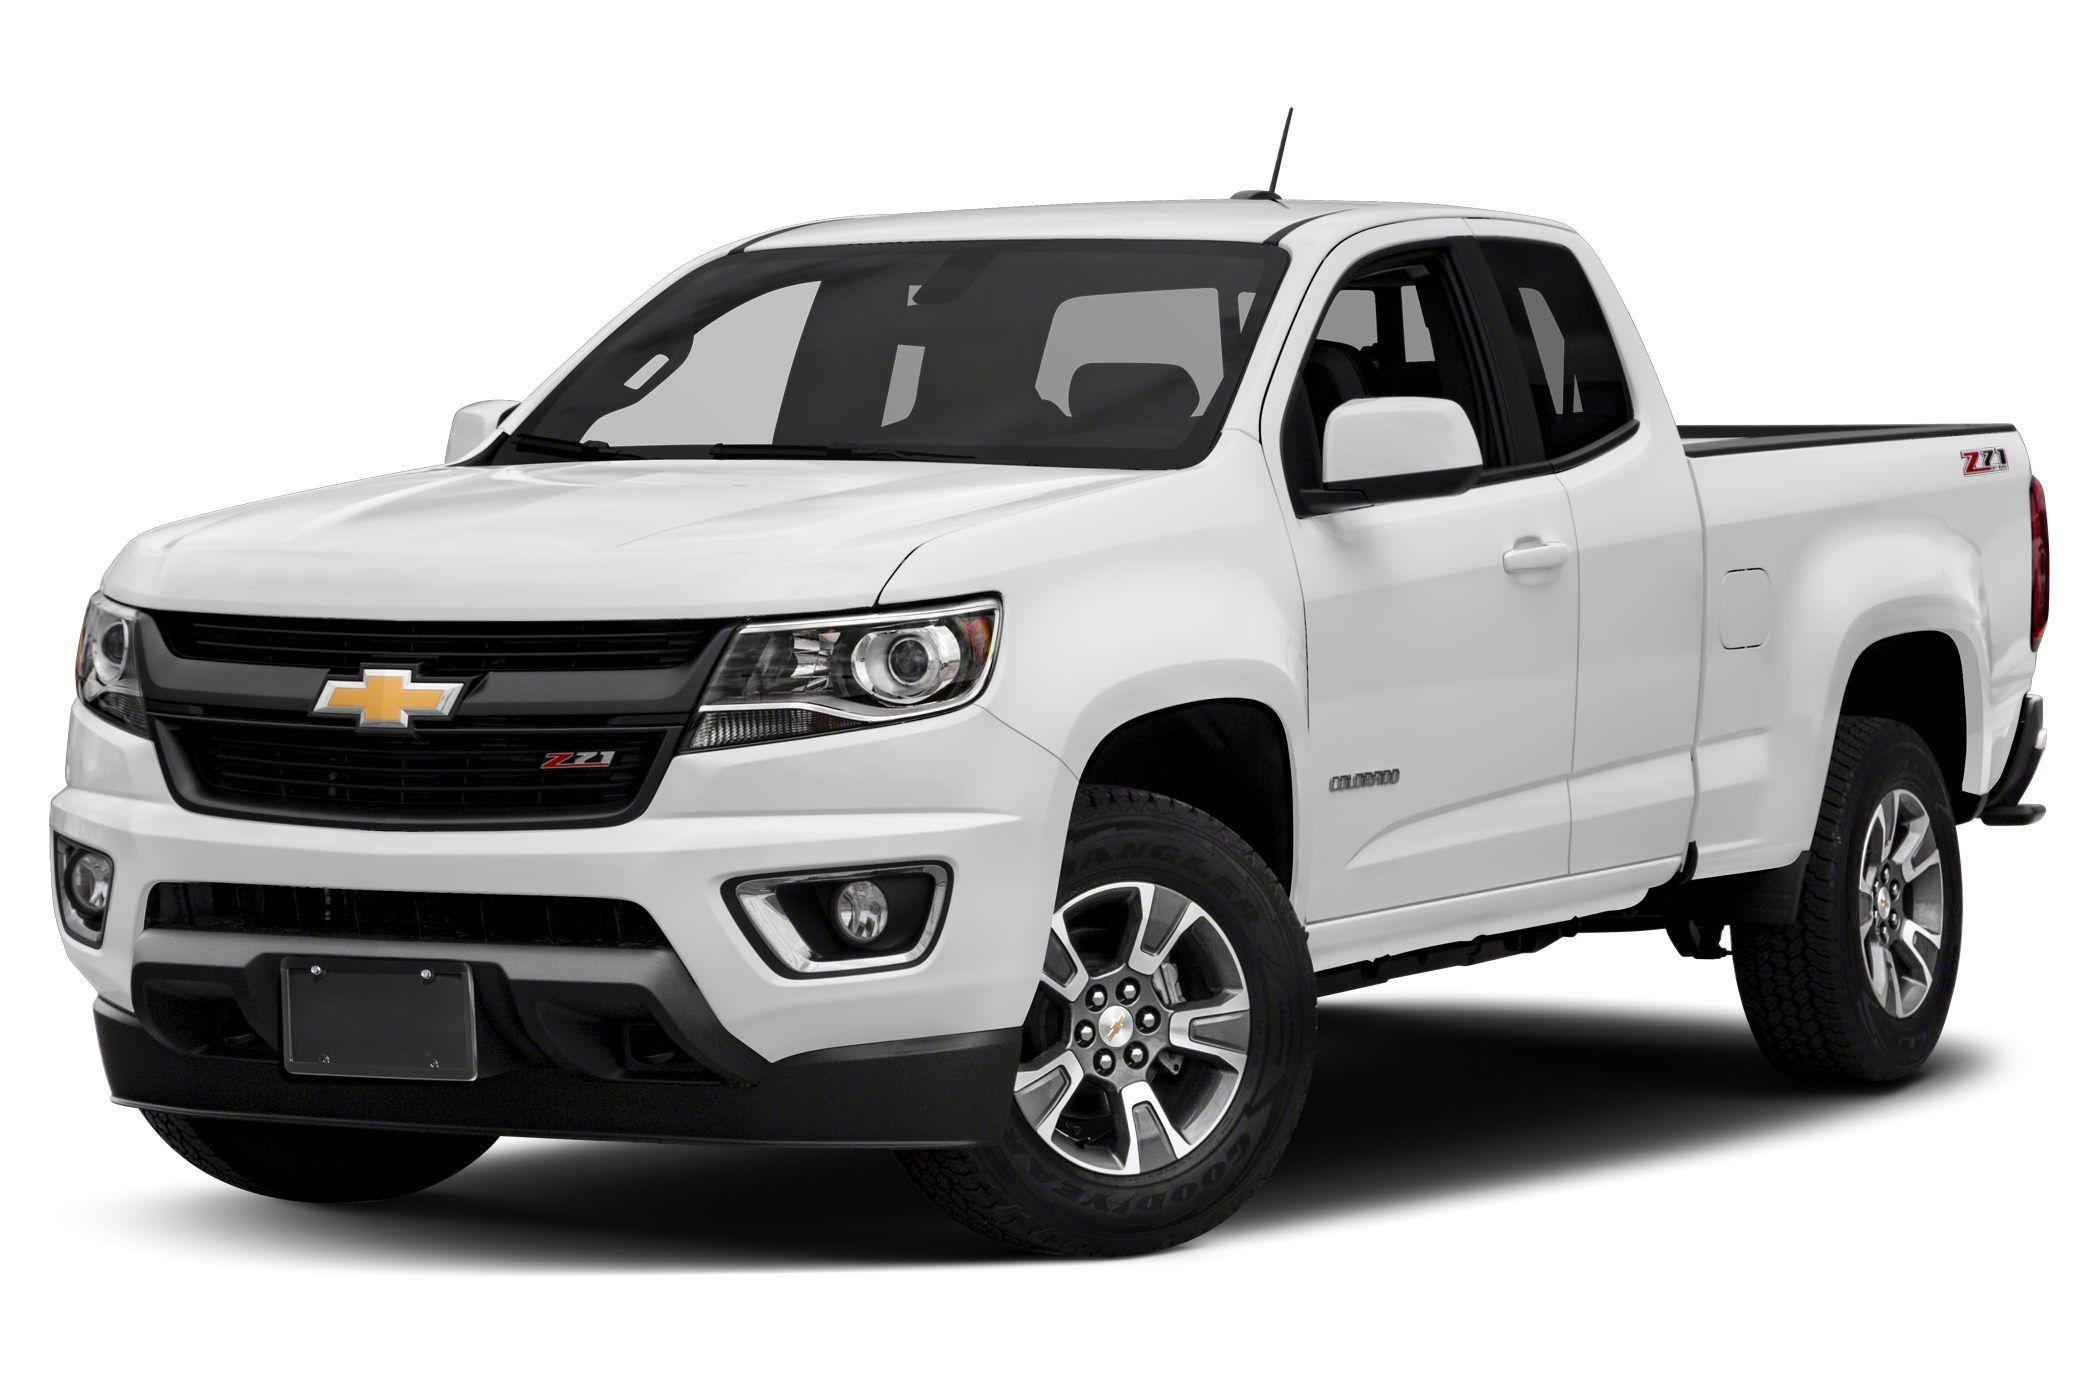 2019 Chevy Colorado Going Launched Soon Check More At Http Www